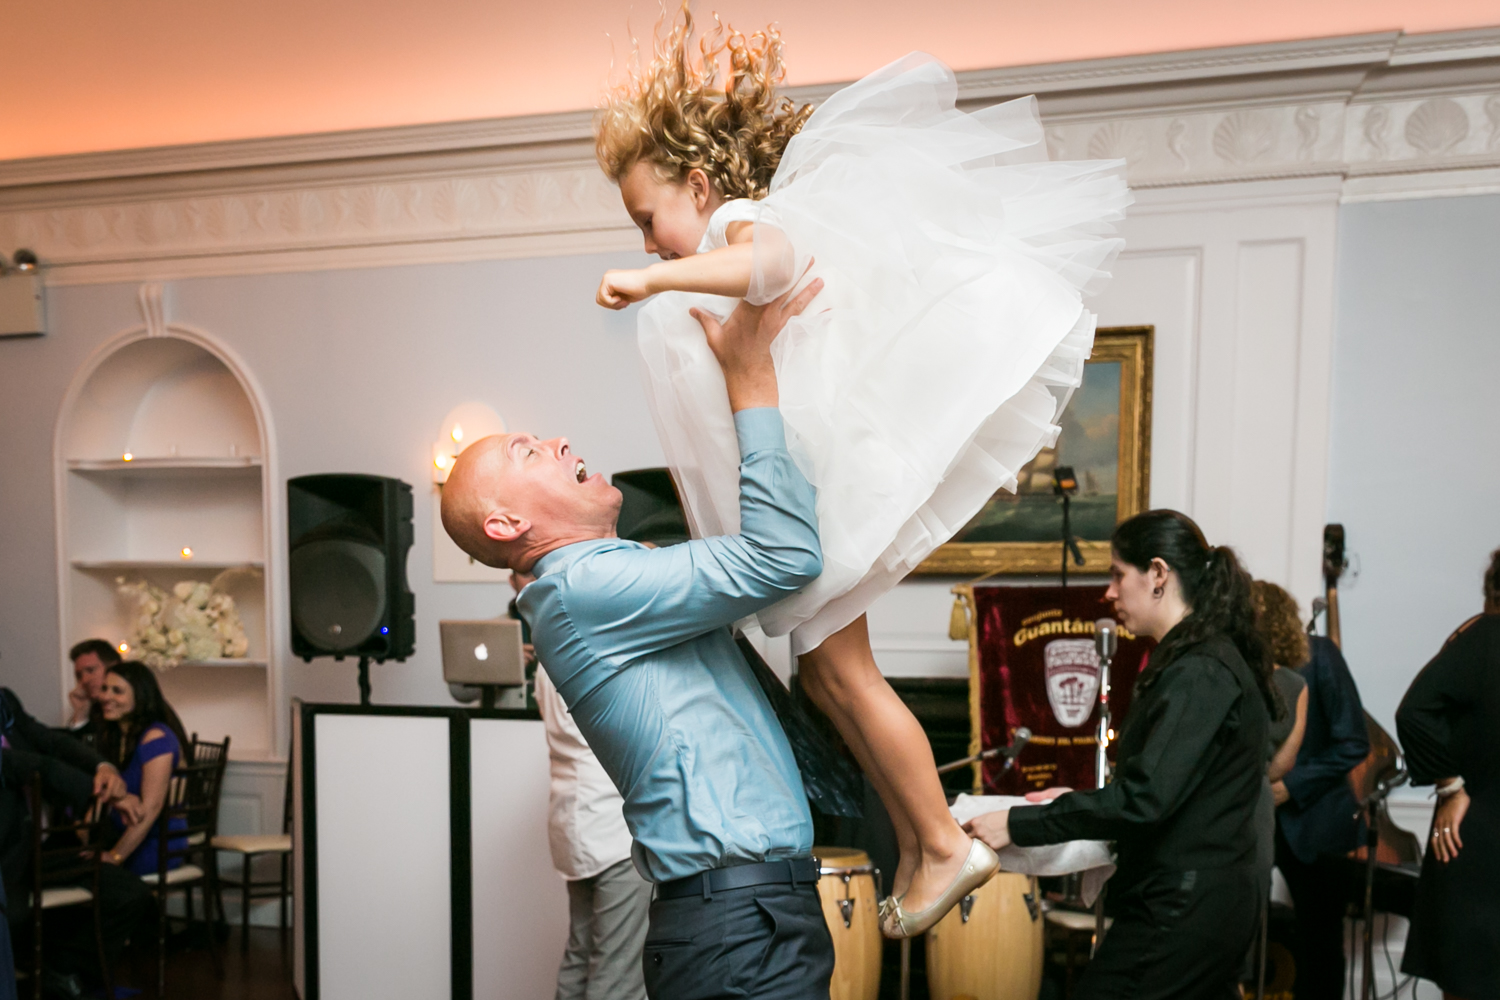 Man throwing little girl up in the air at wedding reception